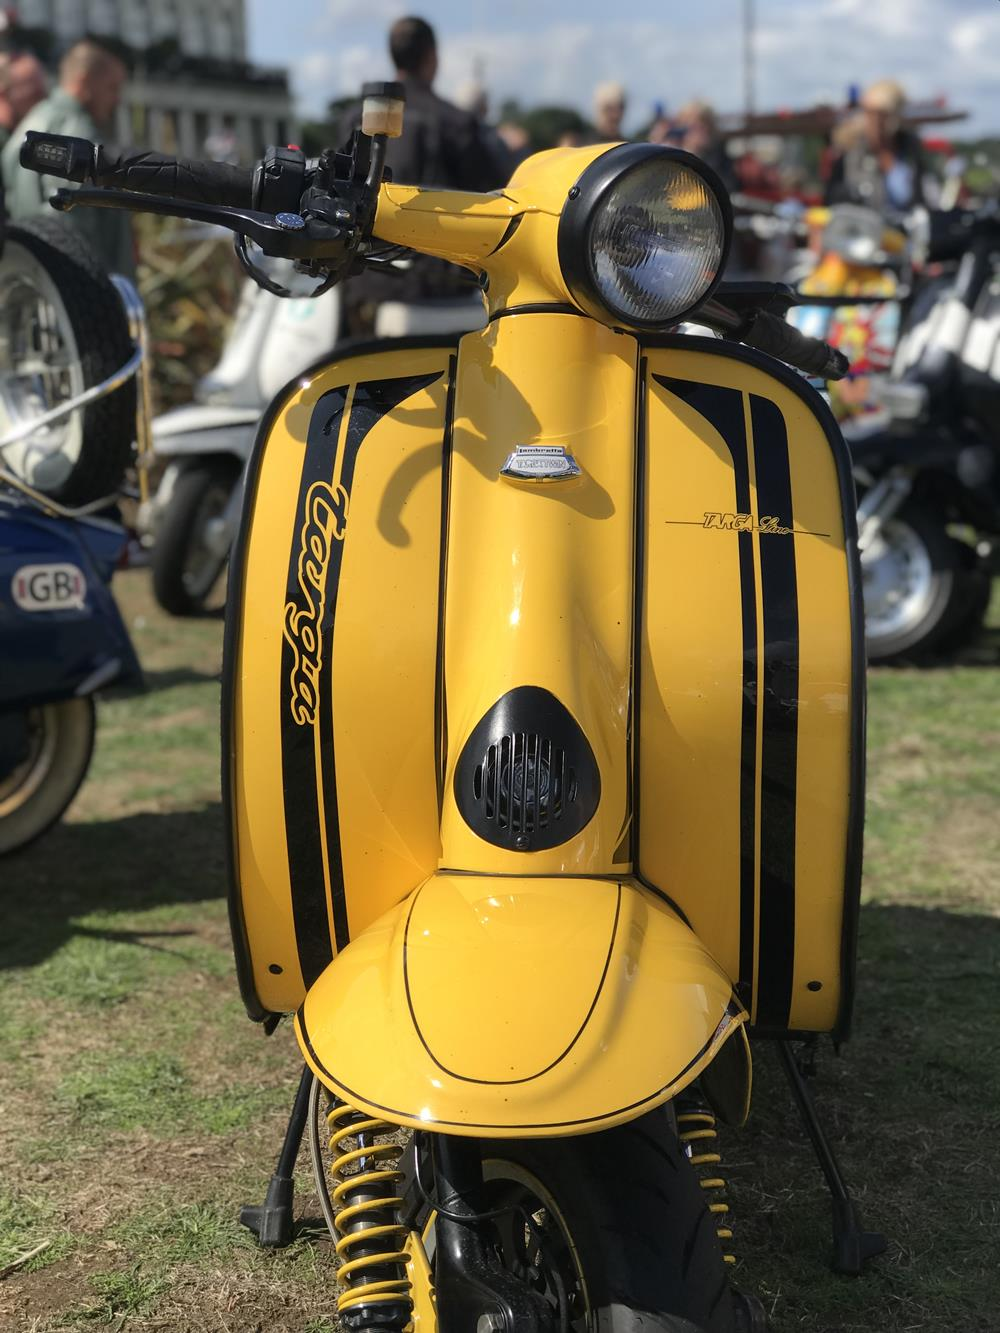 Yellow Lambretta with black stripes on the legshields